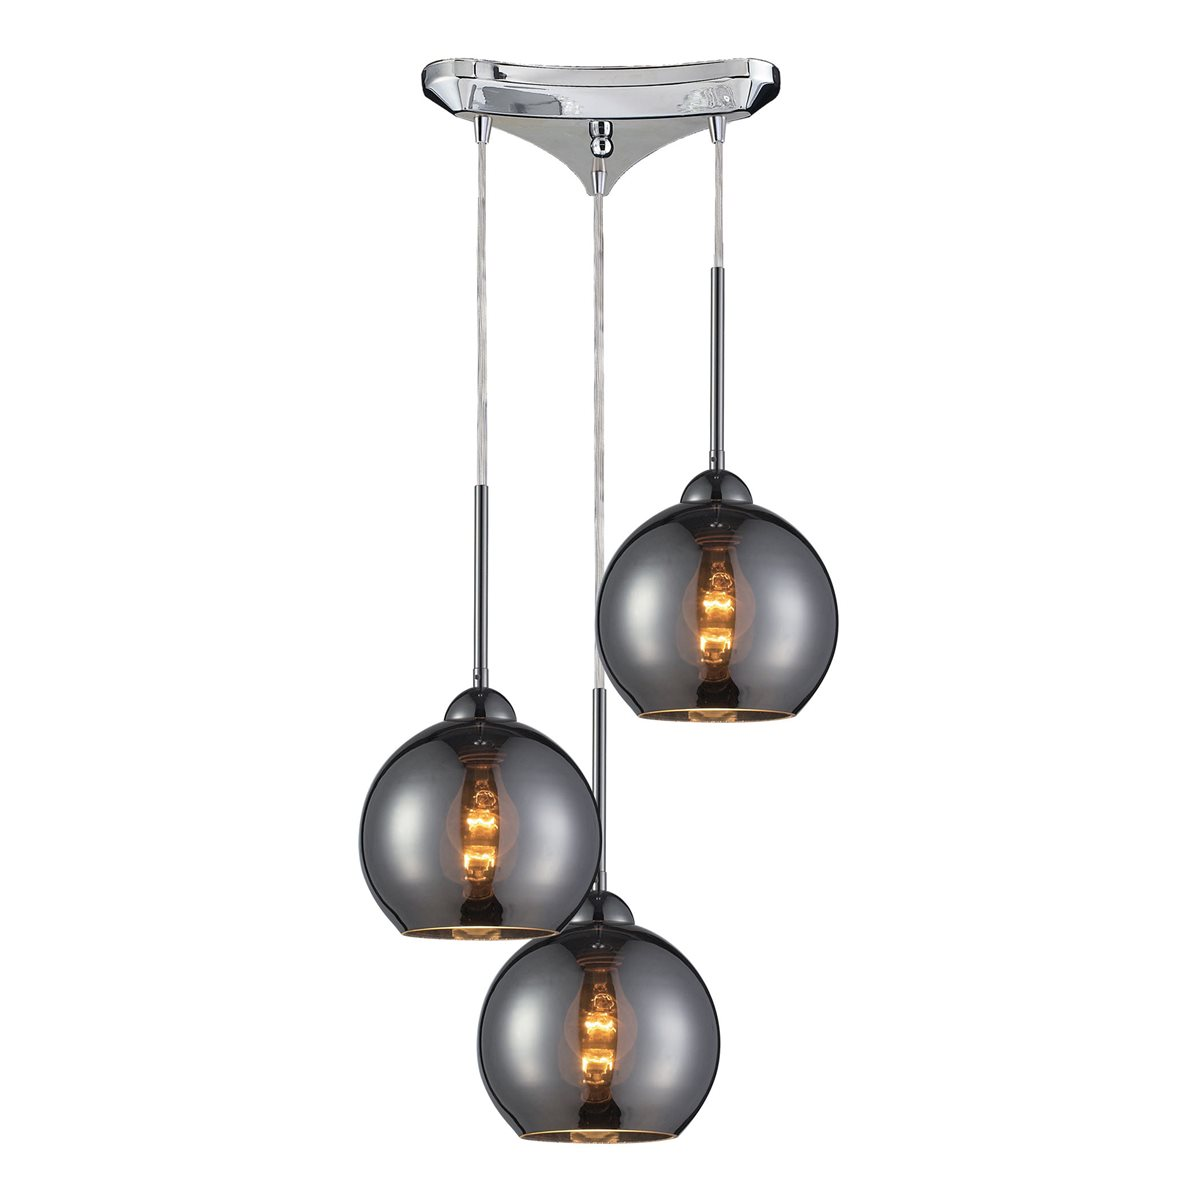 ELK Lighting Pendant Lights, Furniture by ABD, Accentuations Brand